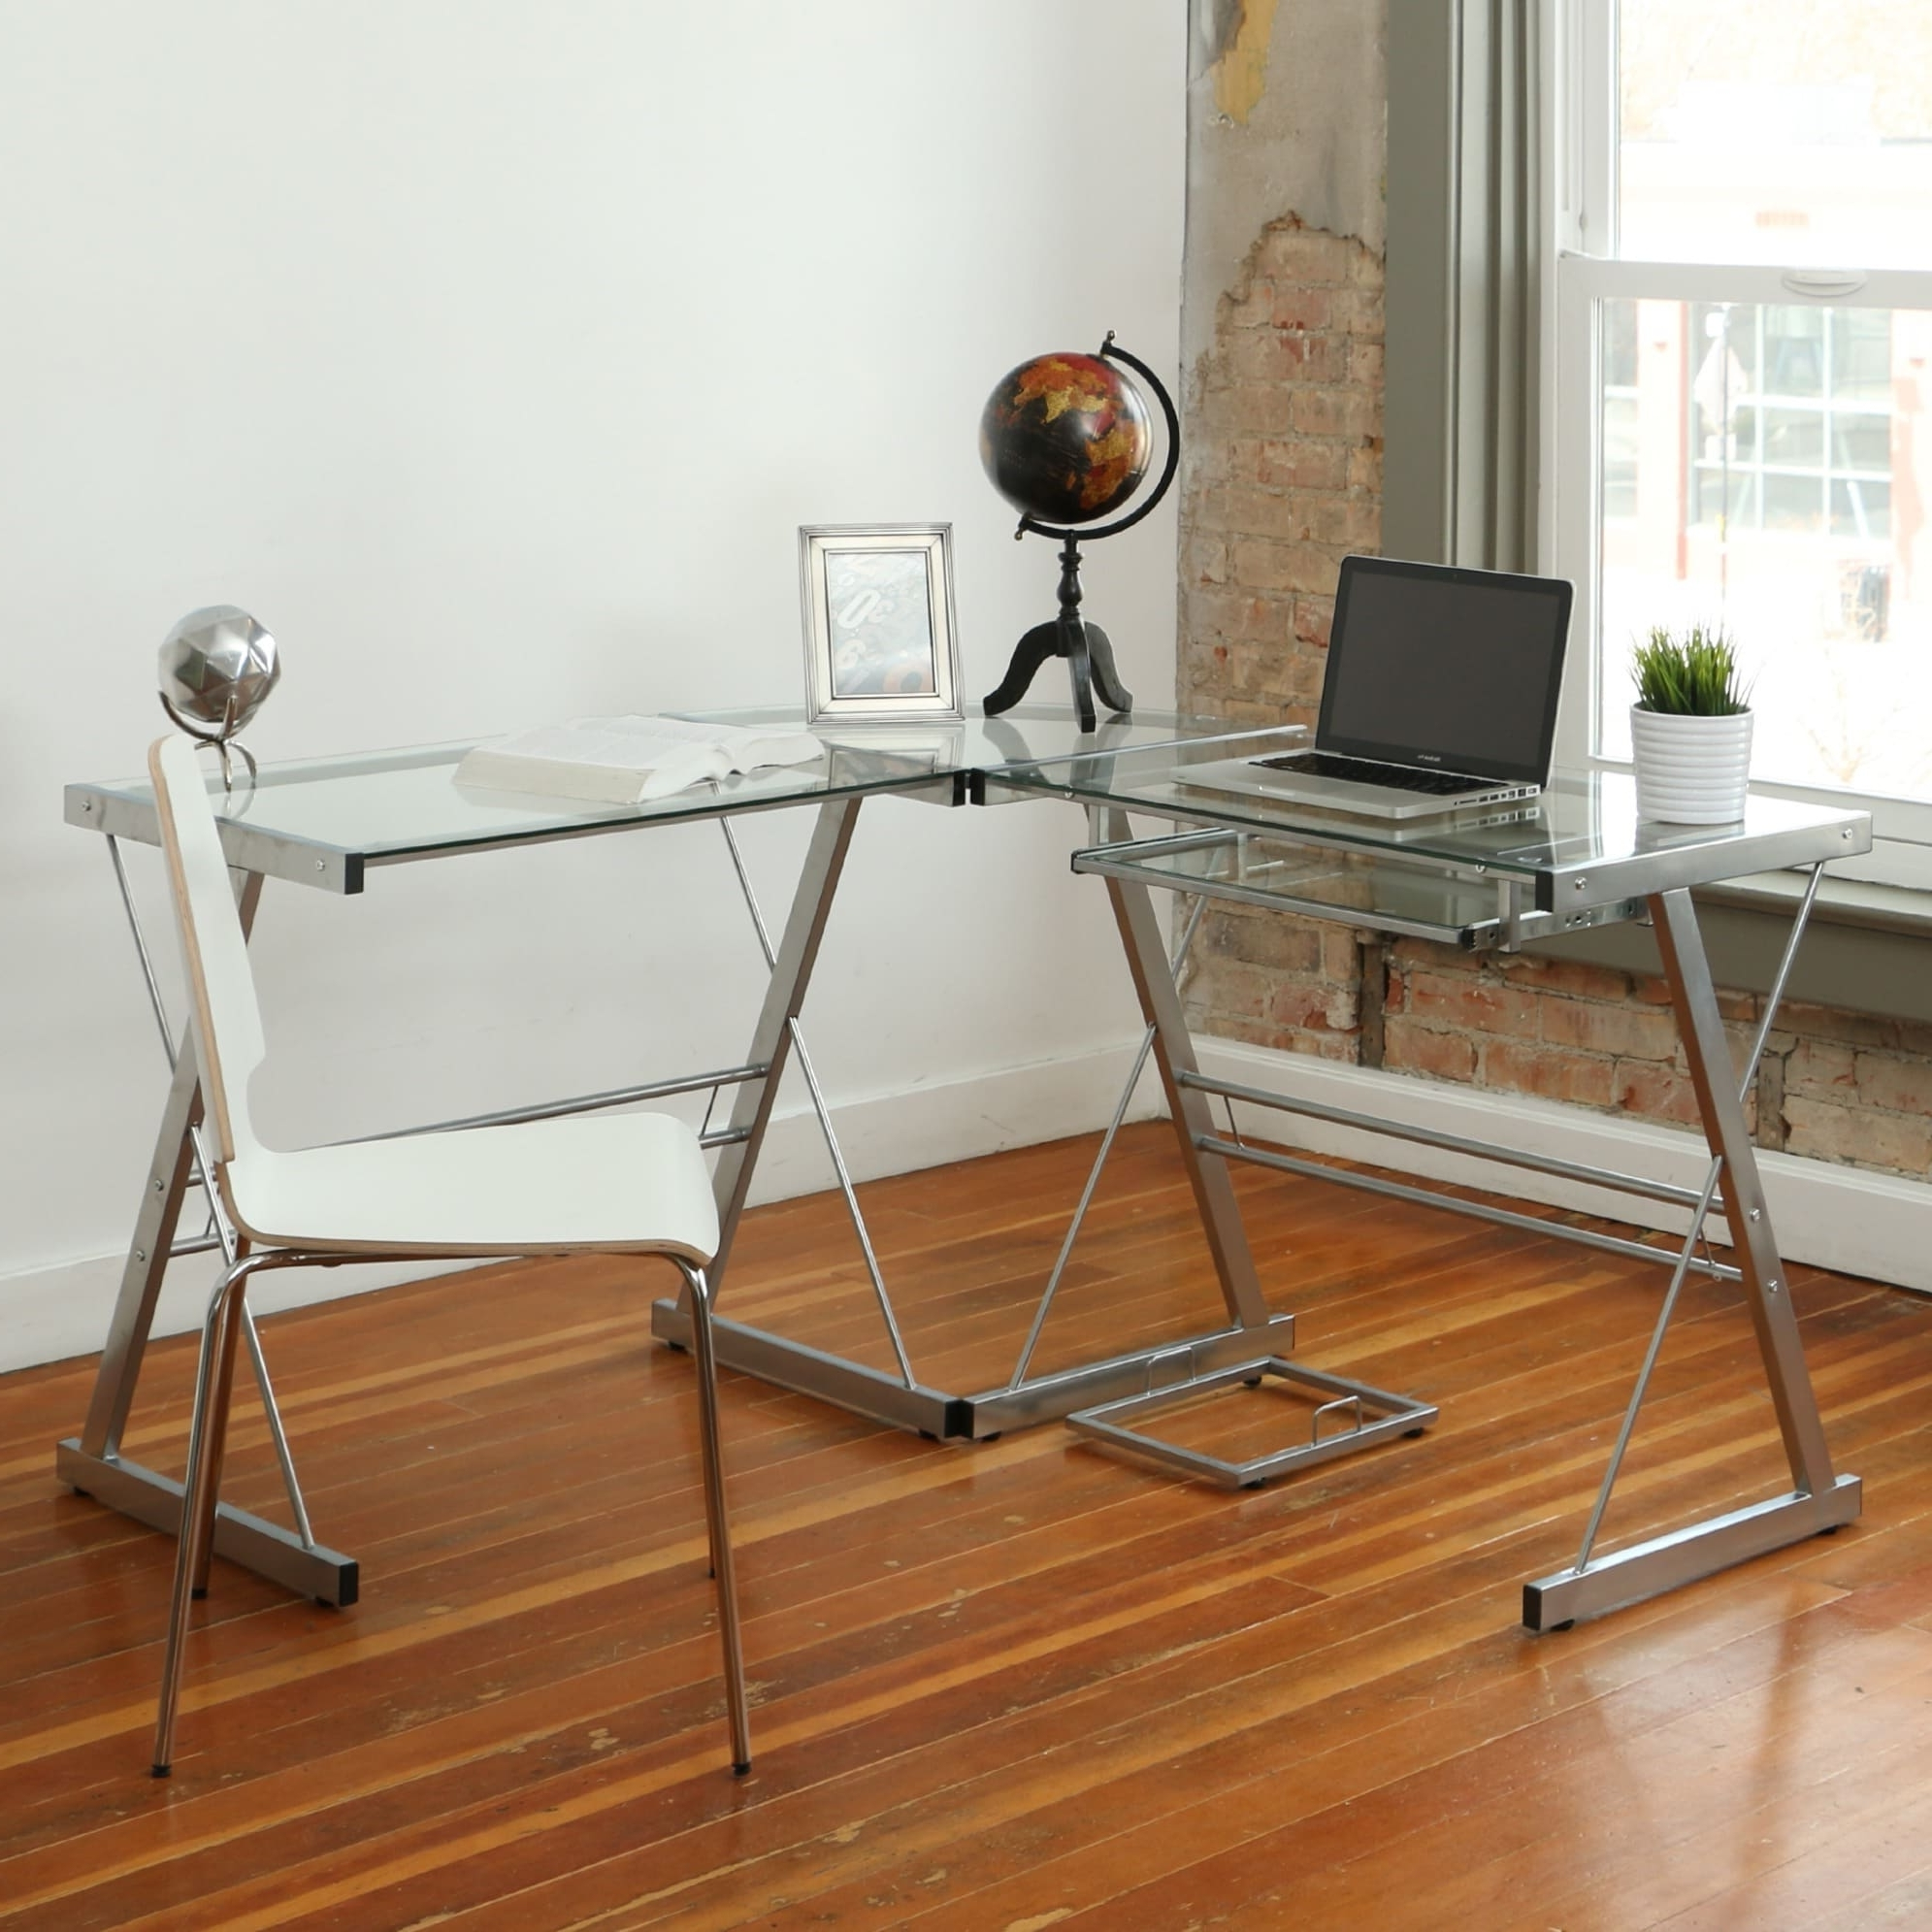 Most Current L Shape Glass Corner Computer Desk – Free Shipping Today Regarding Glass Corner Computer Desks (View 11 of 20)